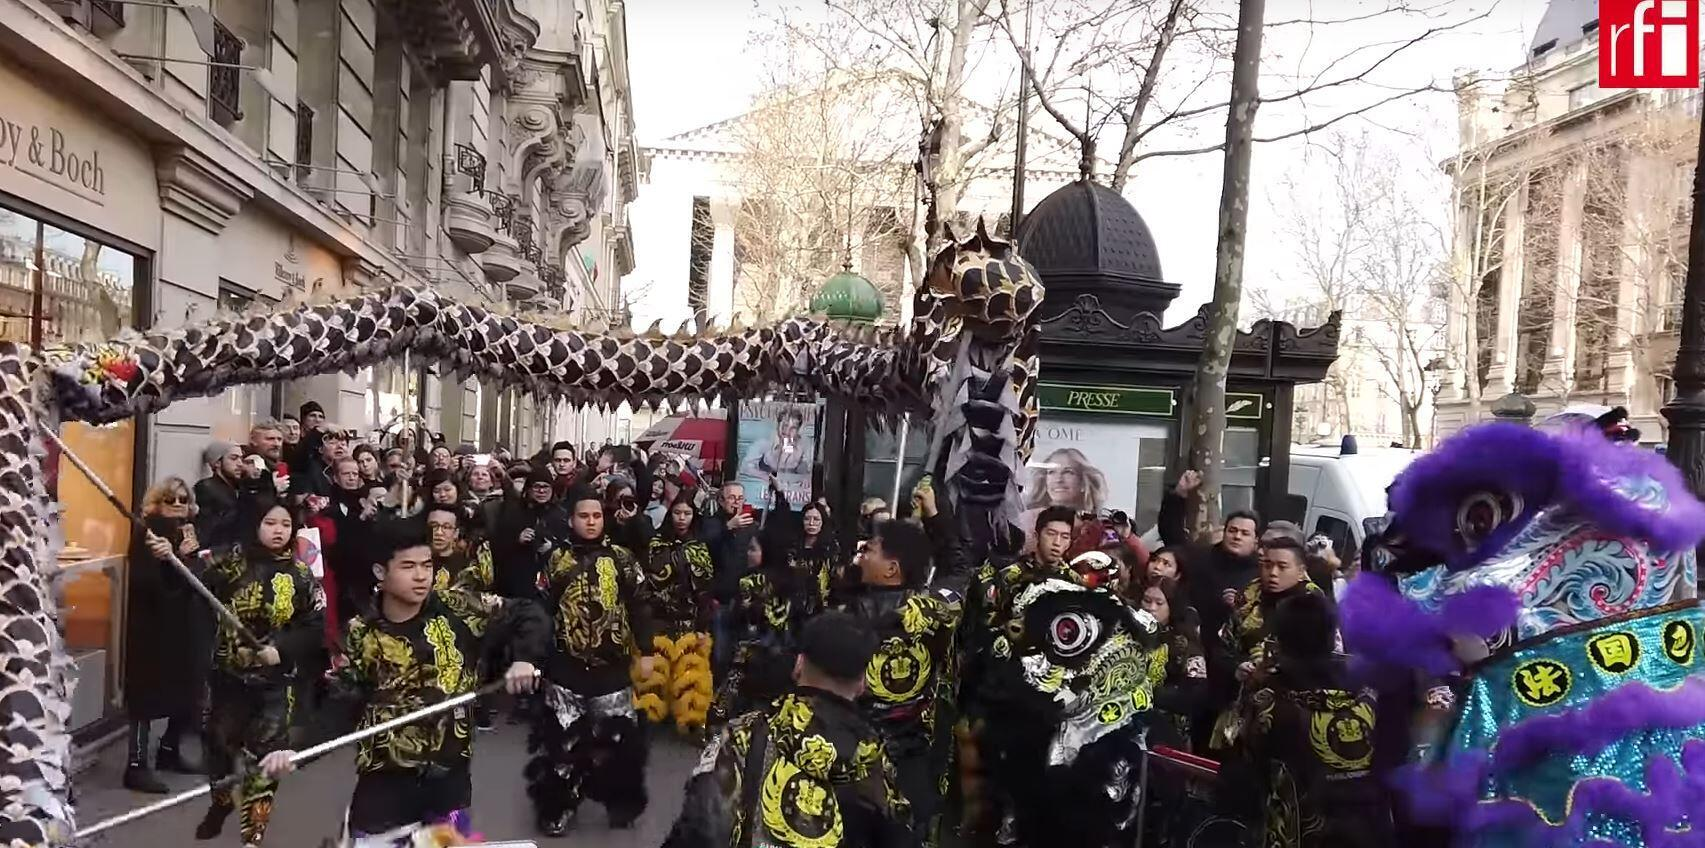 Chinese new year parade in Paris, 2019